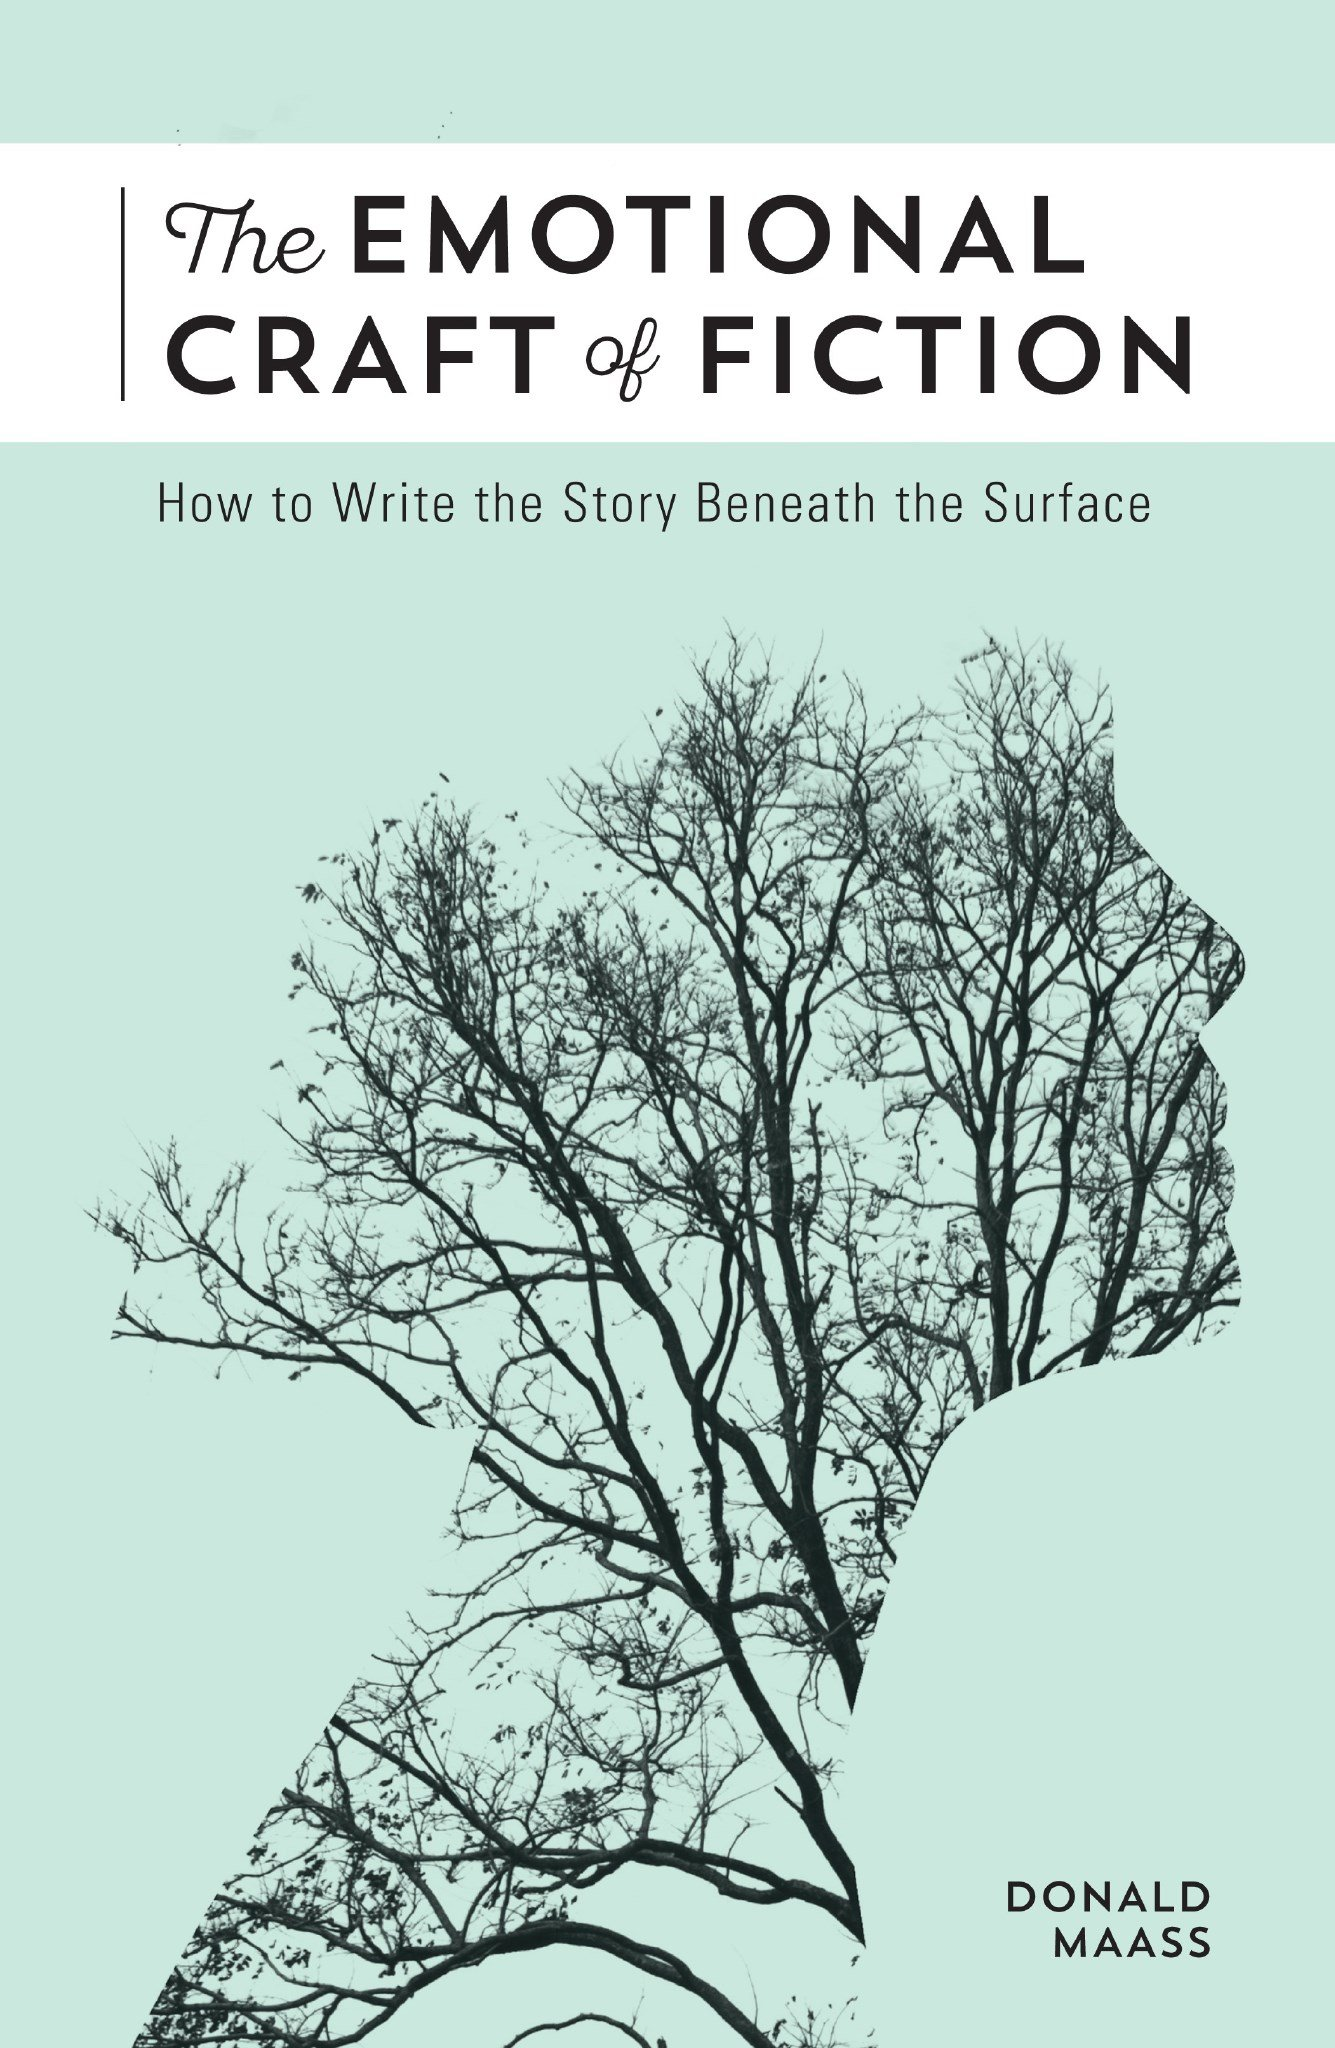 The Emotional Craft of Fiction: How to Write the Story Beneath the Surface:  Donald Maass: 9781440348372: Amazon.com: Books